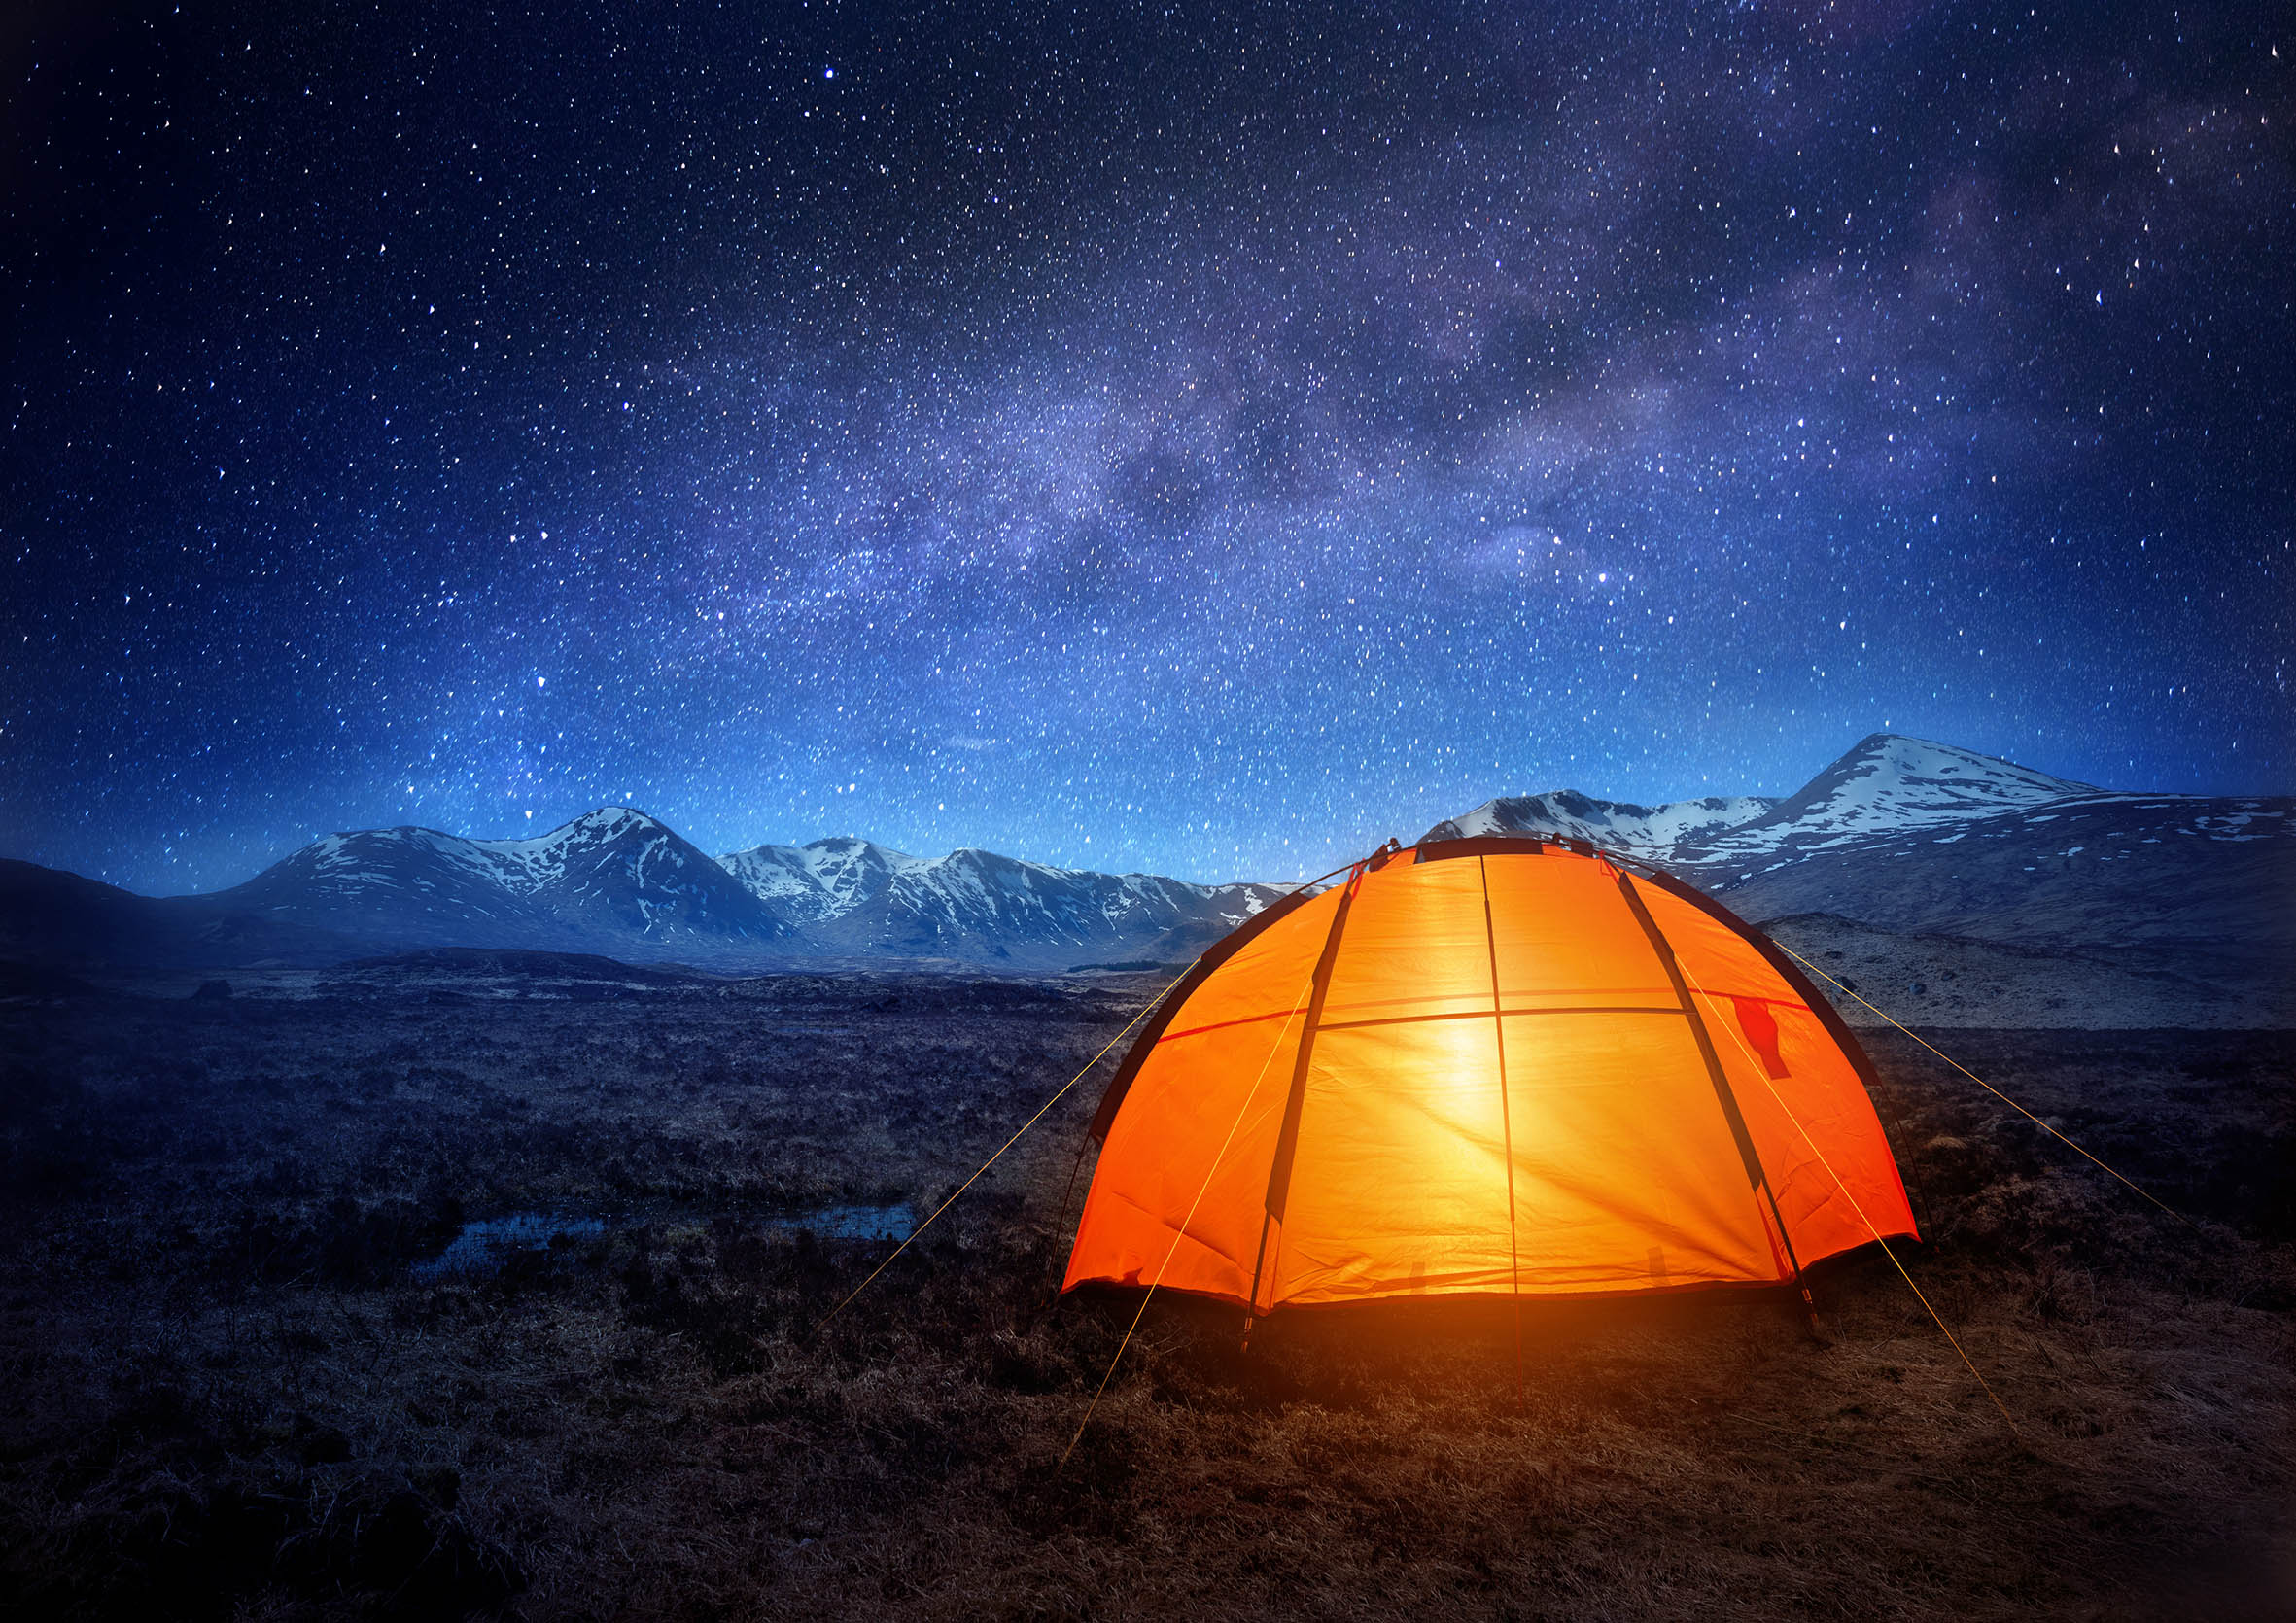 The sky at night during wild camping | Land Rover Explore